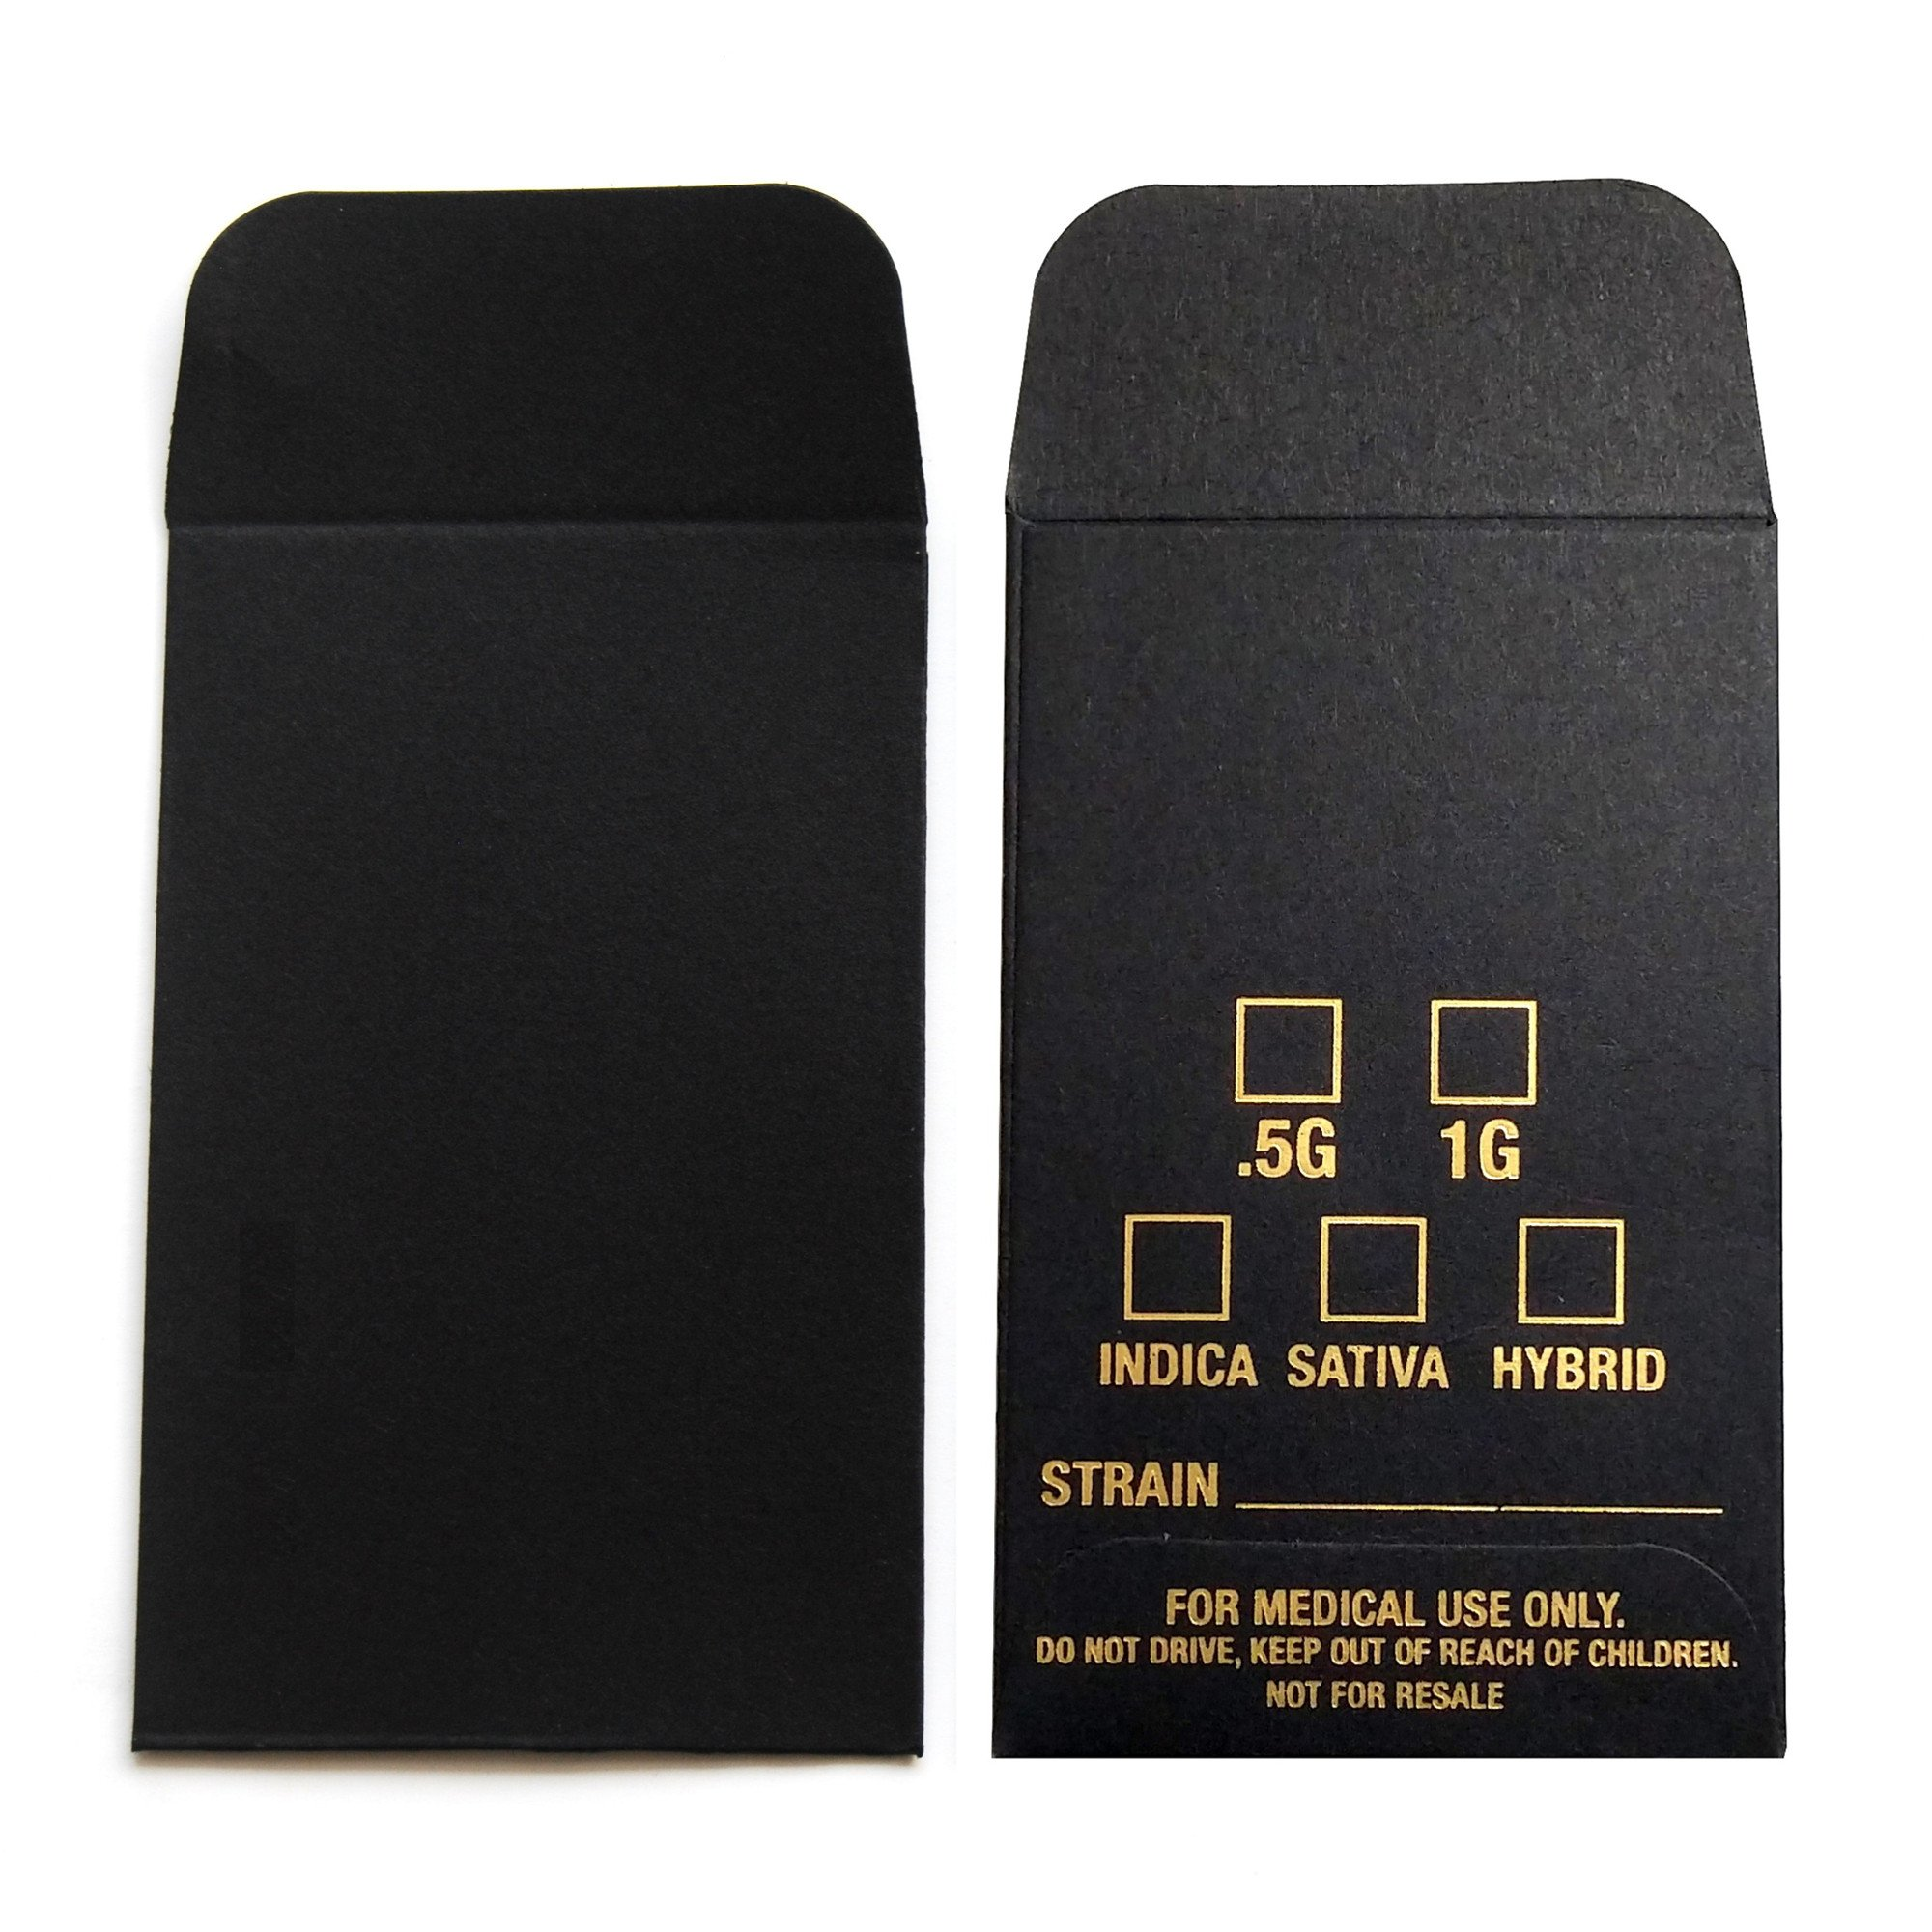 100 Black Gold Oil Wax Extract Coin Envelopes 2.25'' X 3.5'' #1 Stamped Label Version Version by Shatter Labels